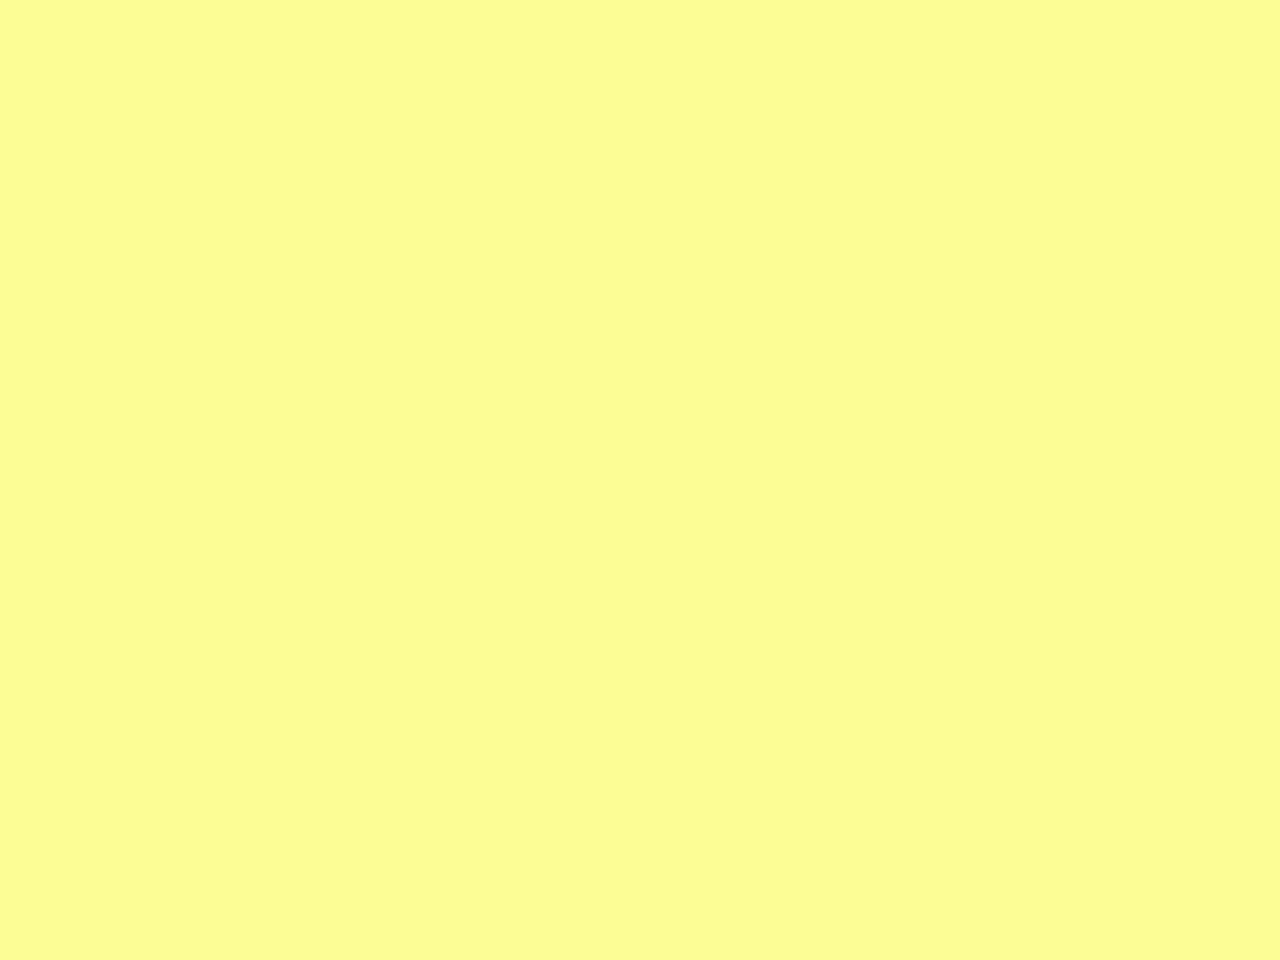 1280x960 Pastel Yellow Solid Color Background